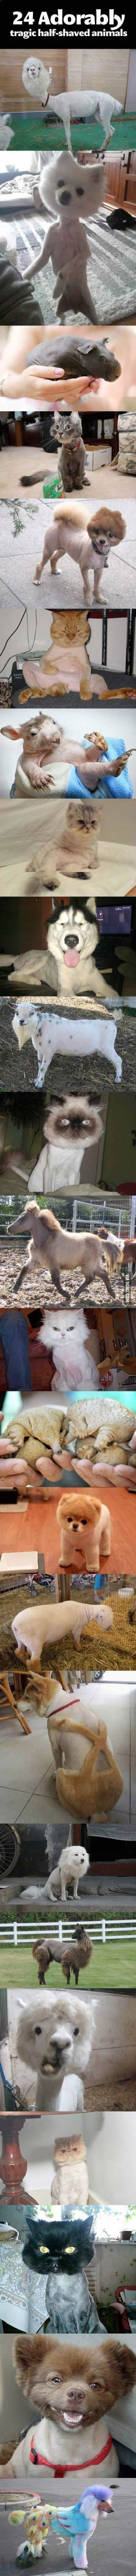 Funny half shaved animals